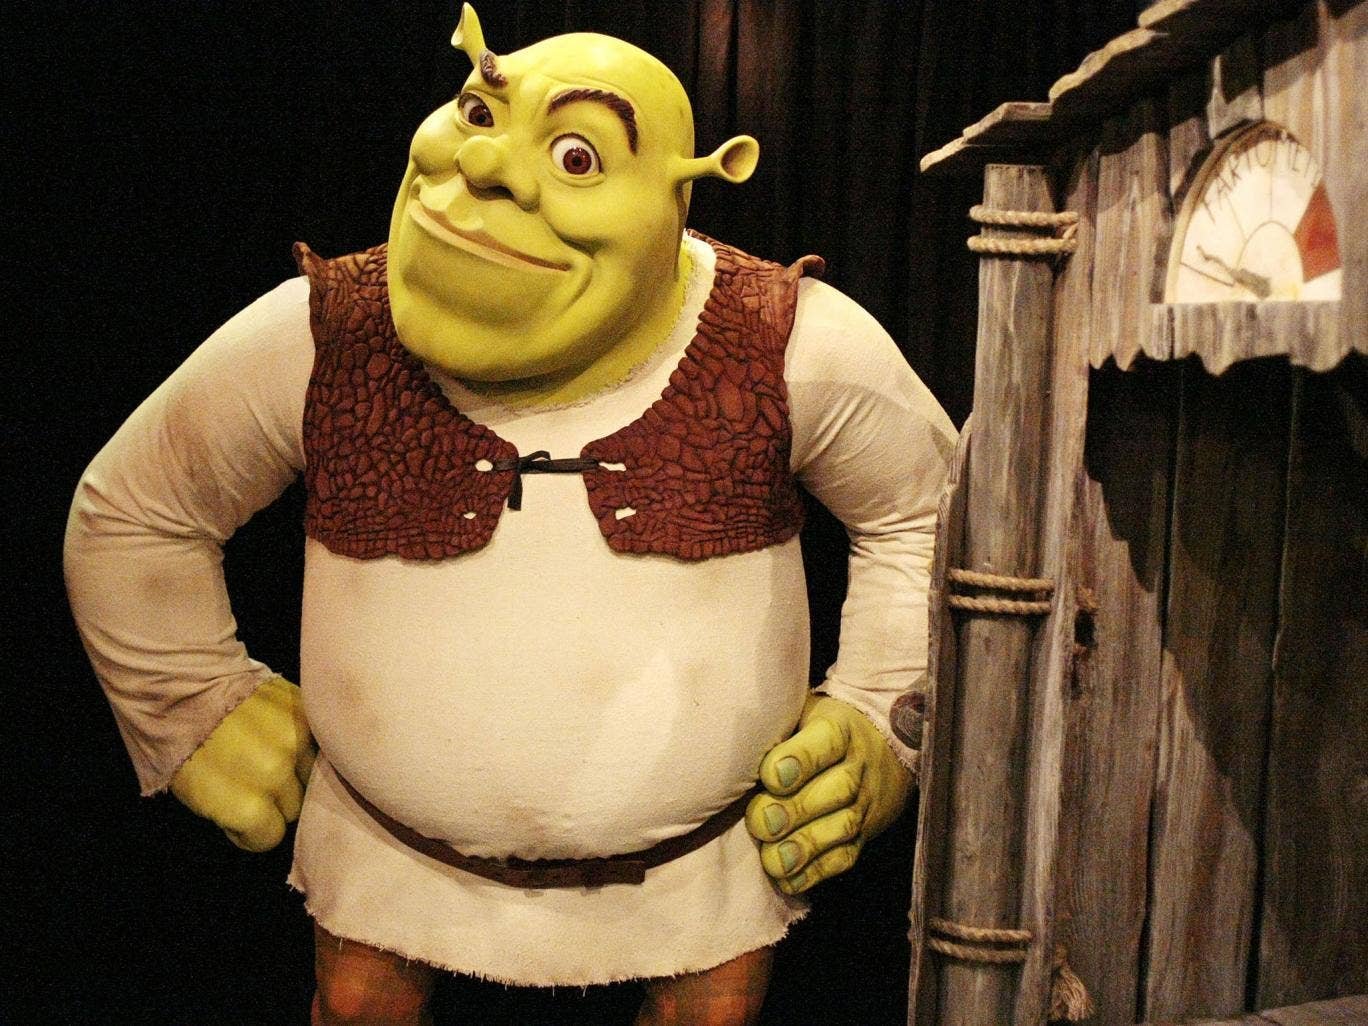 A waxwork model of Shrek at Madame Tussaud's in London, also run by Merlin Entertainments who are behind the Shrek theme park deal